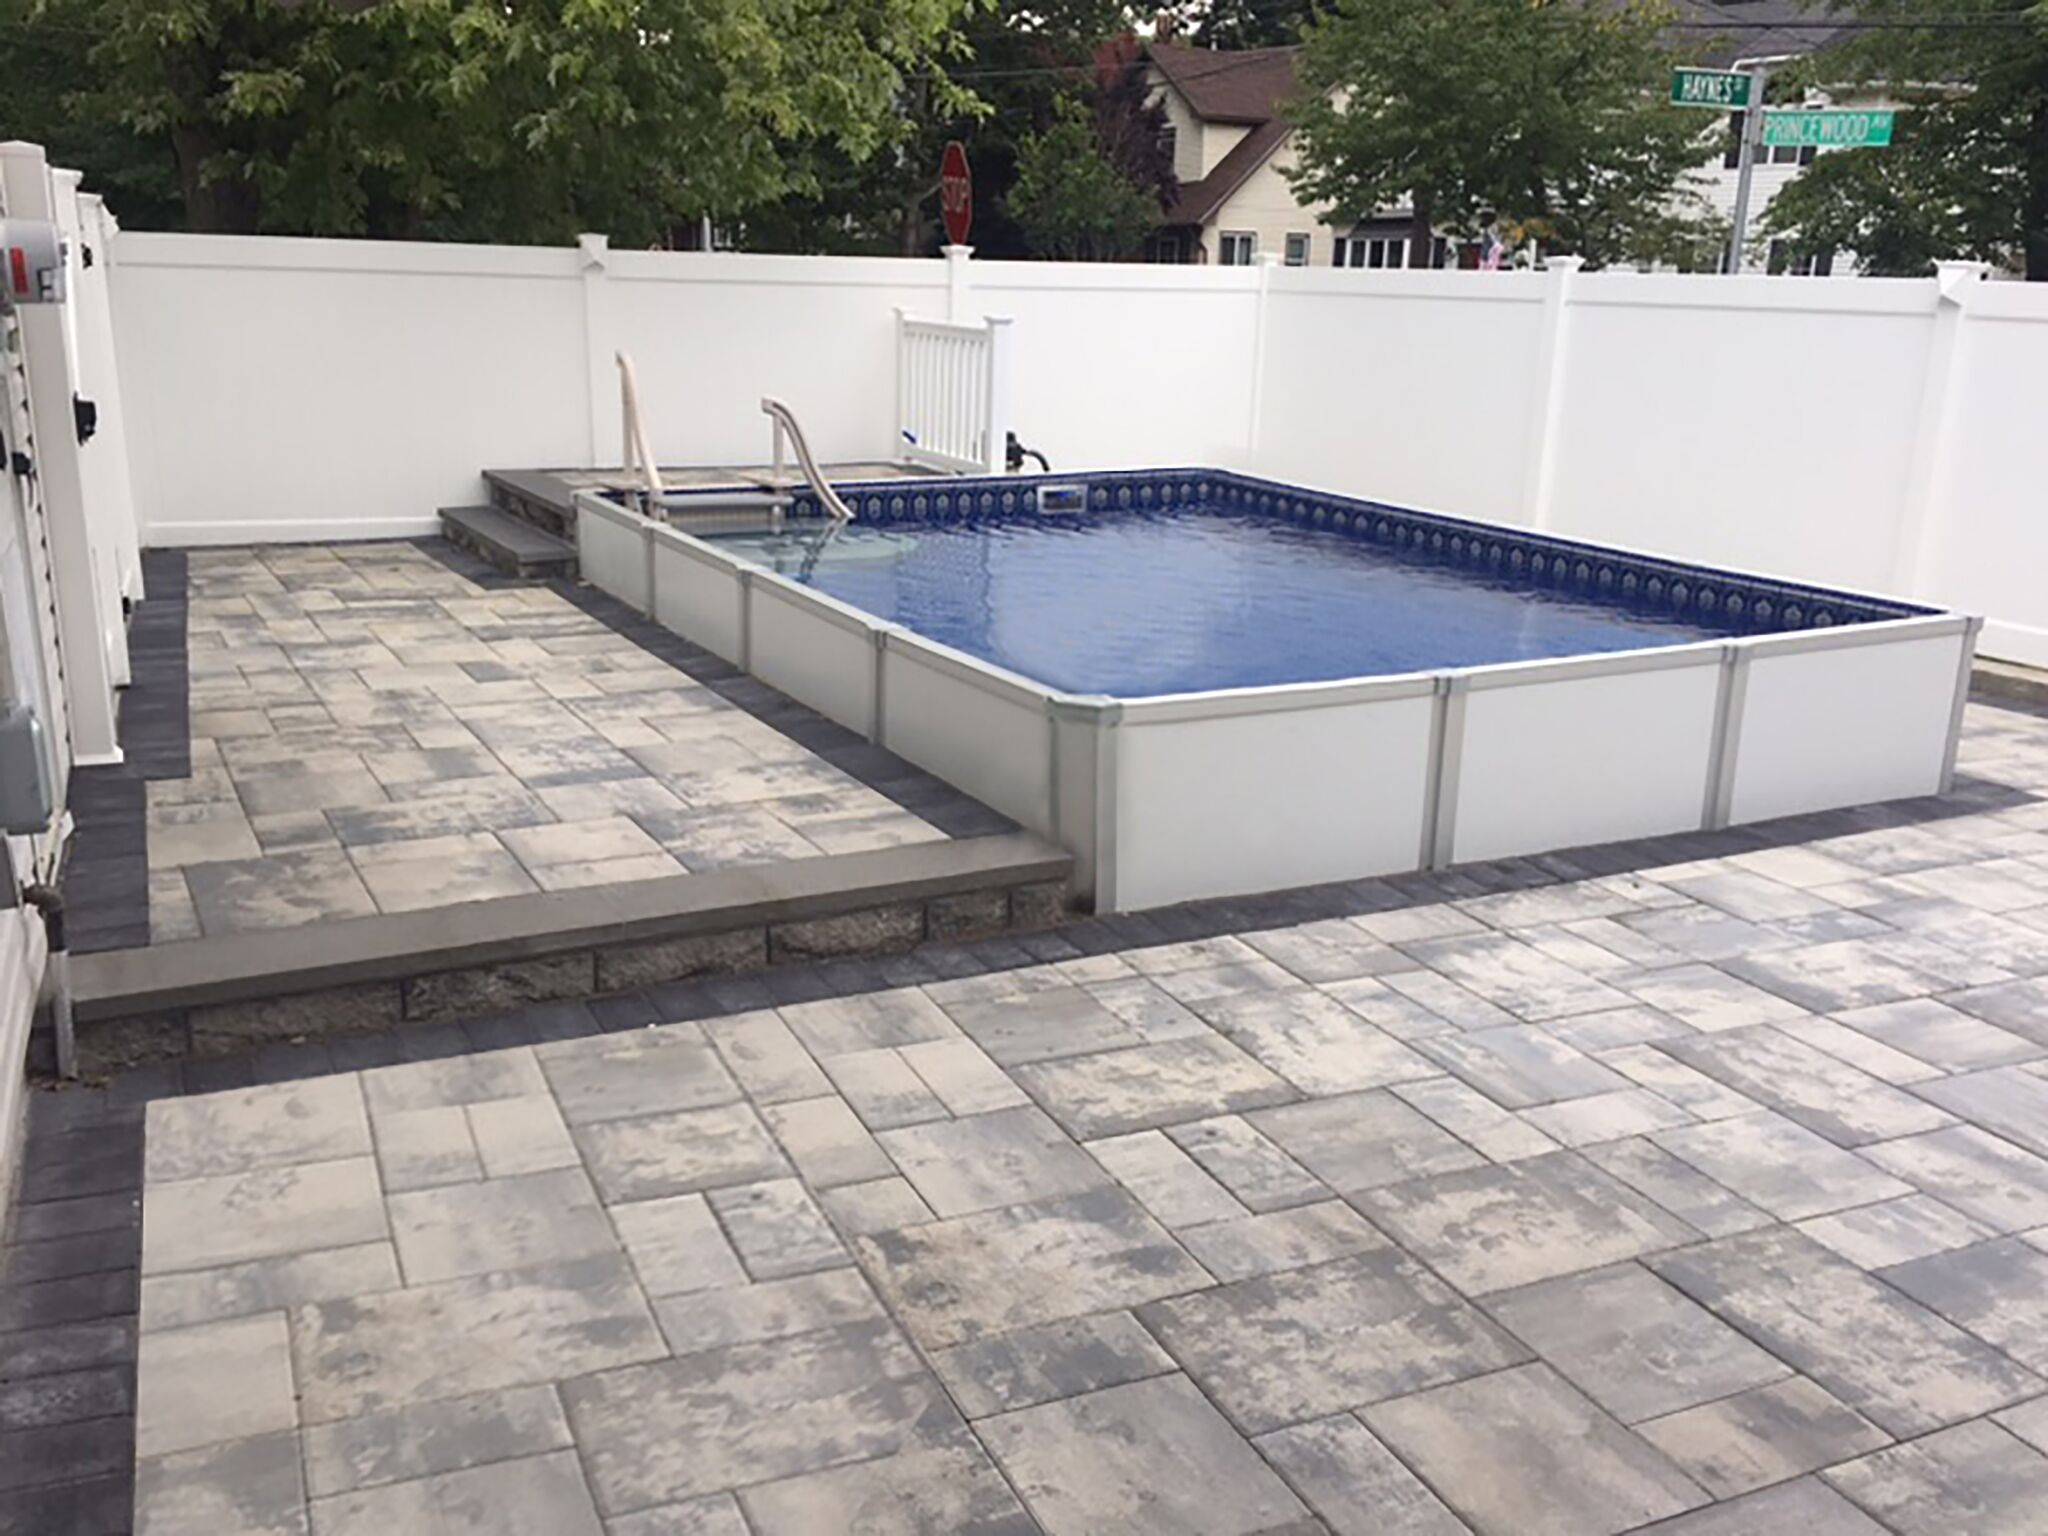 Hercules Modular Aboveground Rectangular Pool For 2019